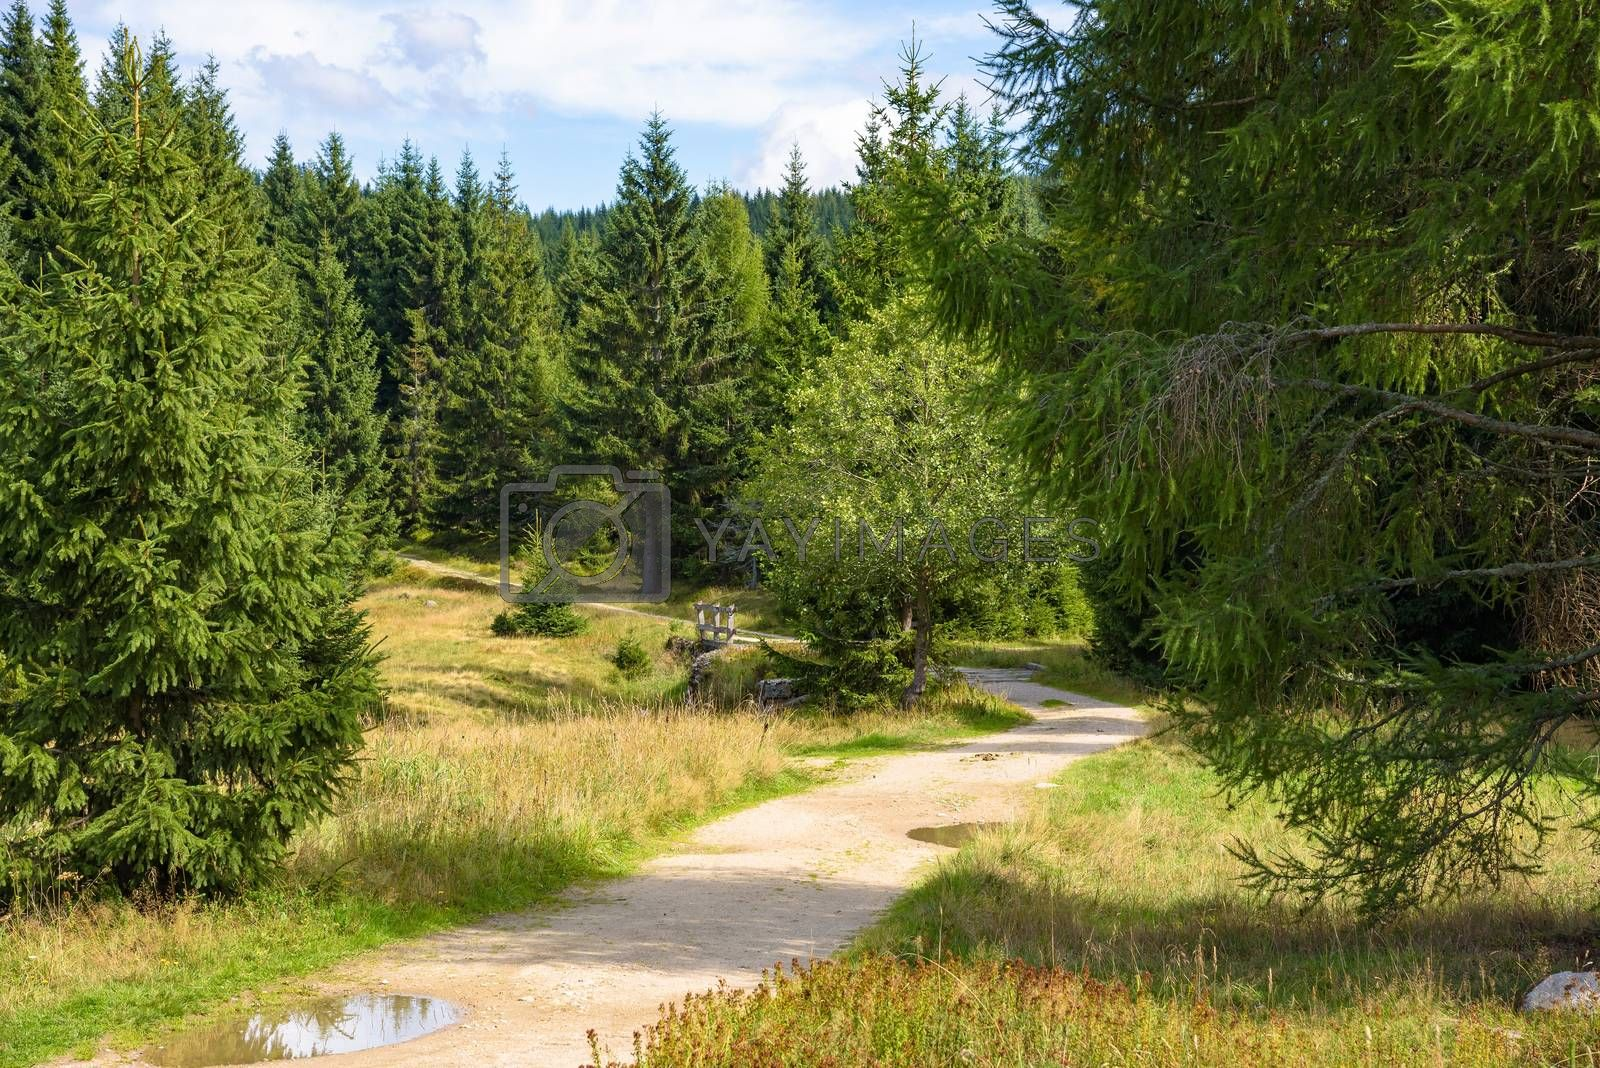 Summer view of forest path in Jizera Mountains in Poland